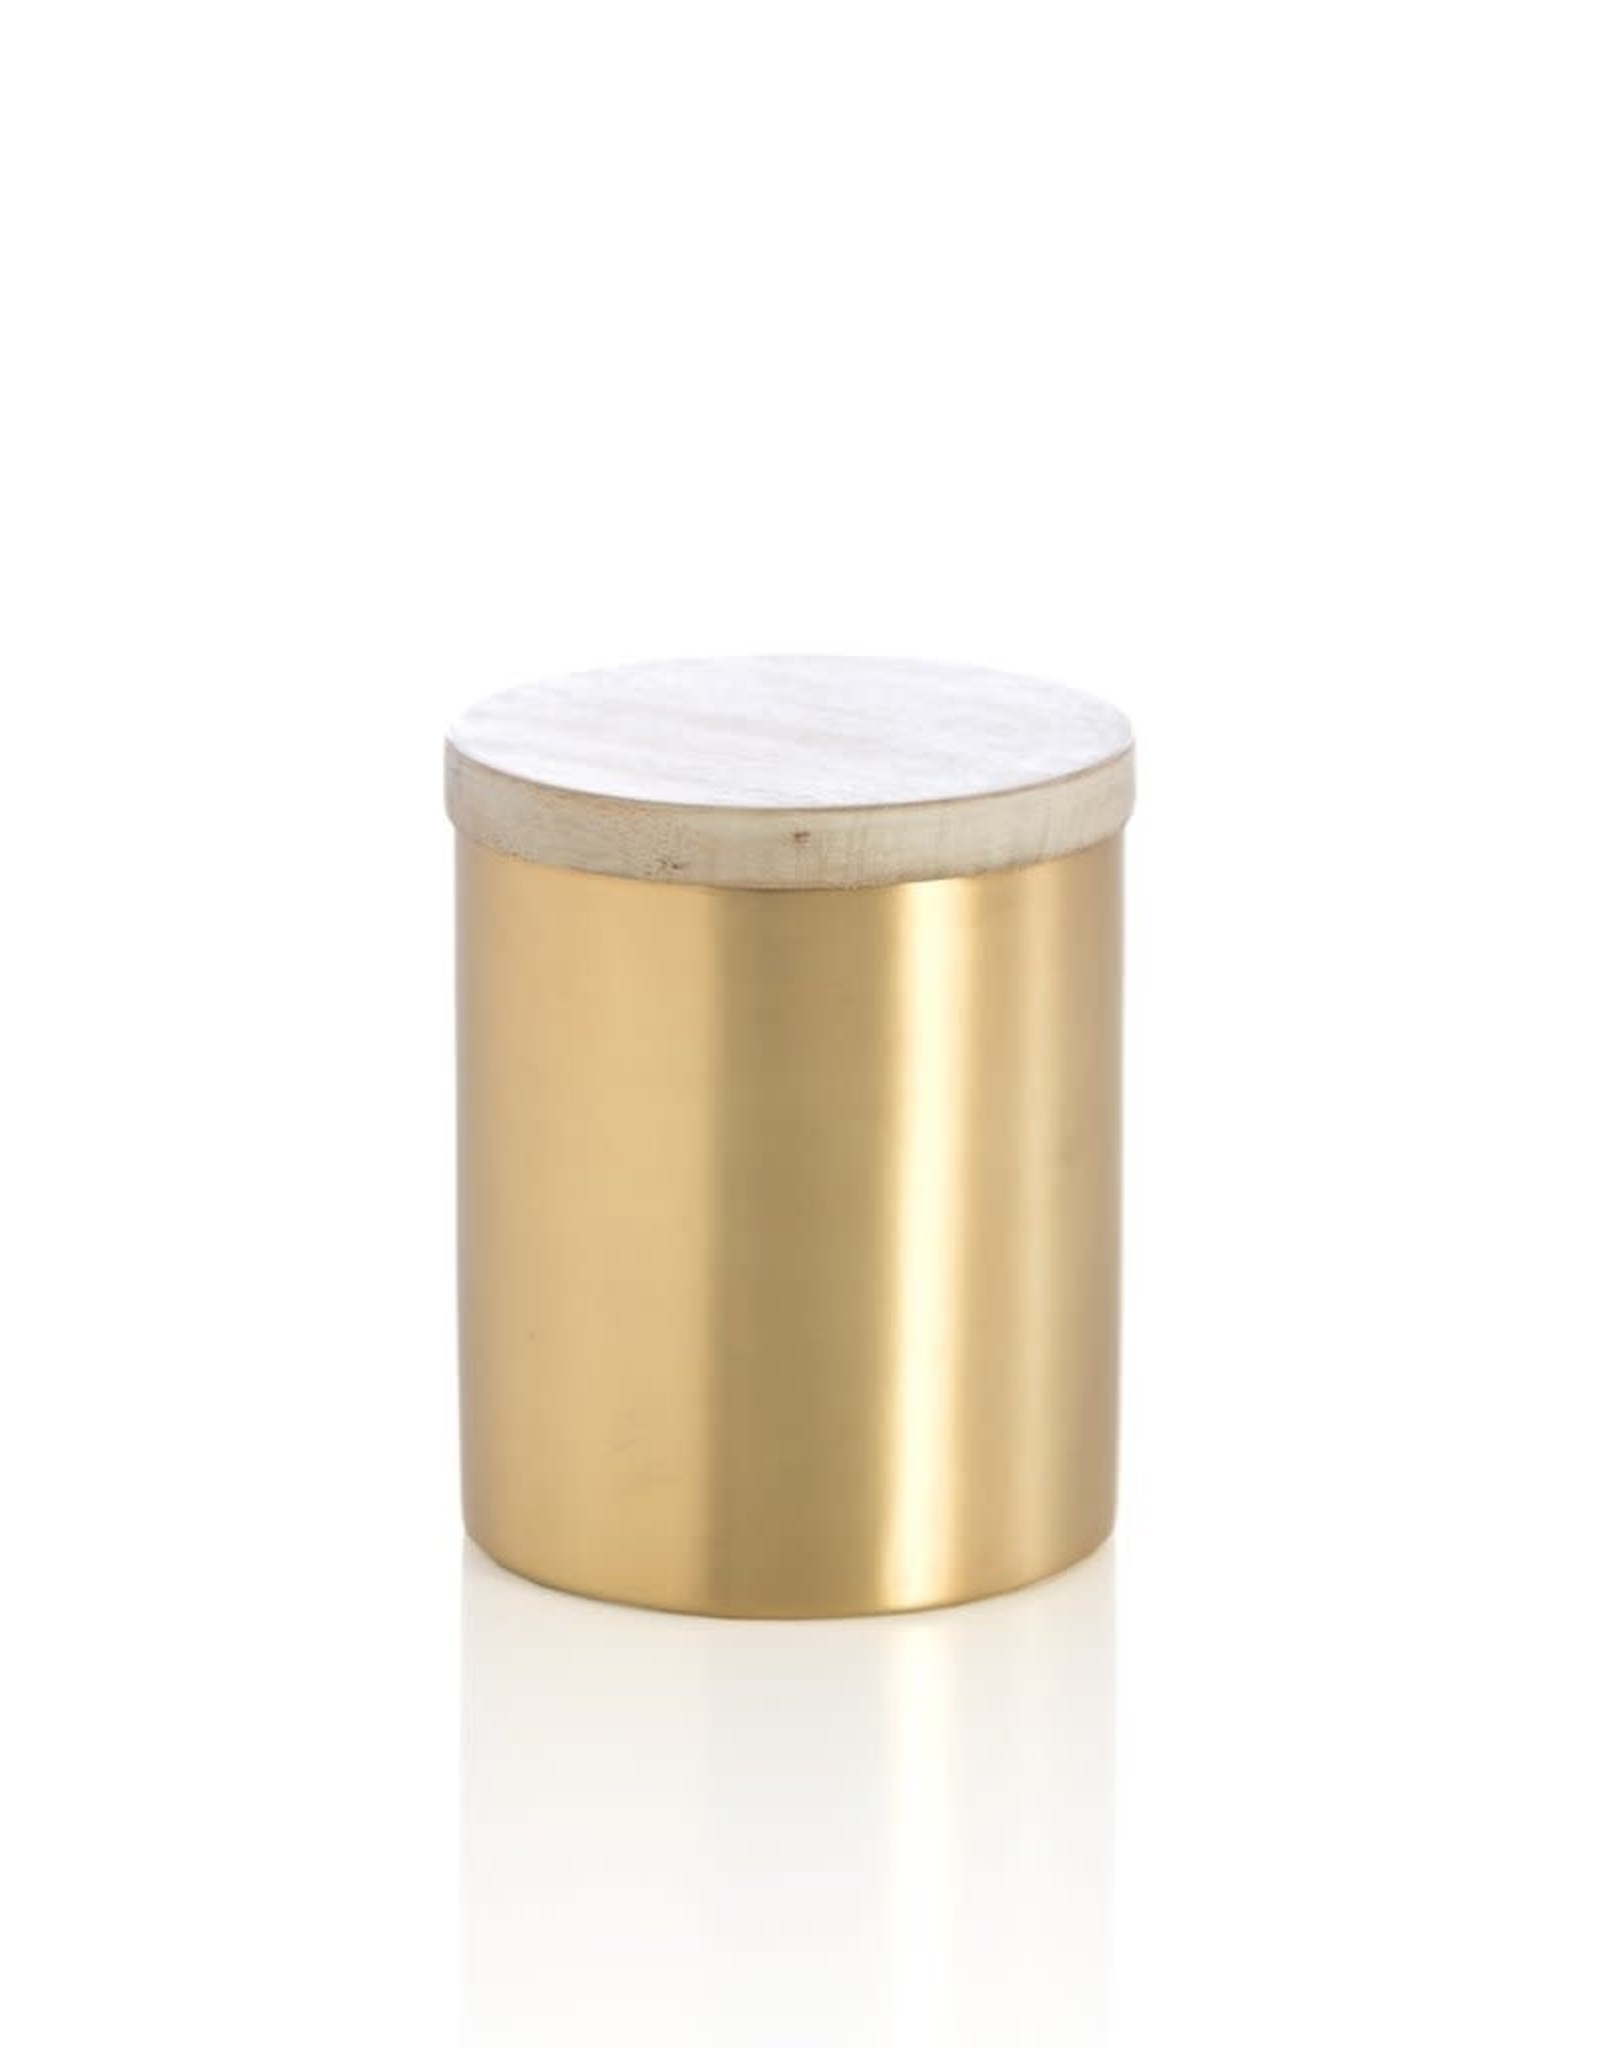 Gold Stainless Steel Container